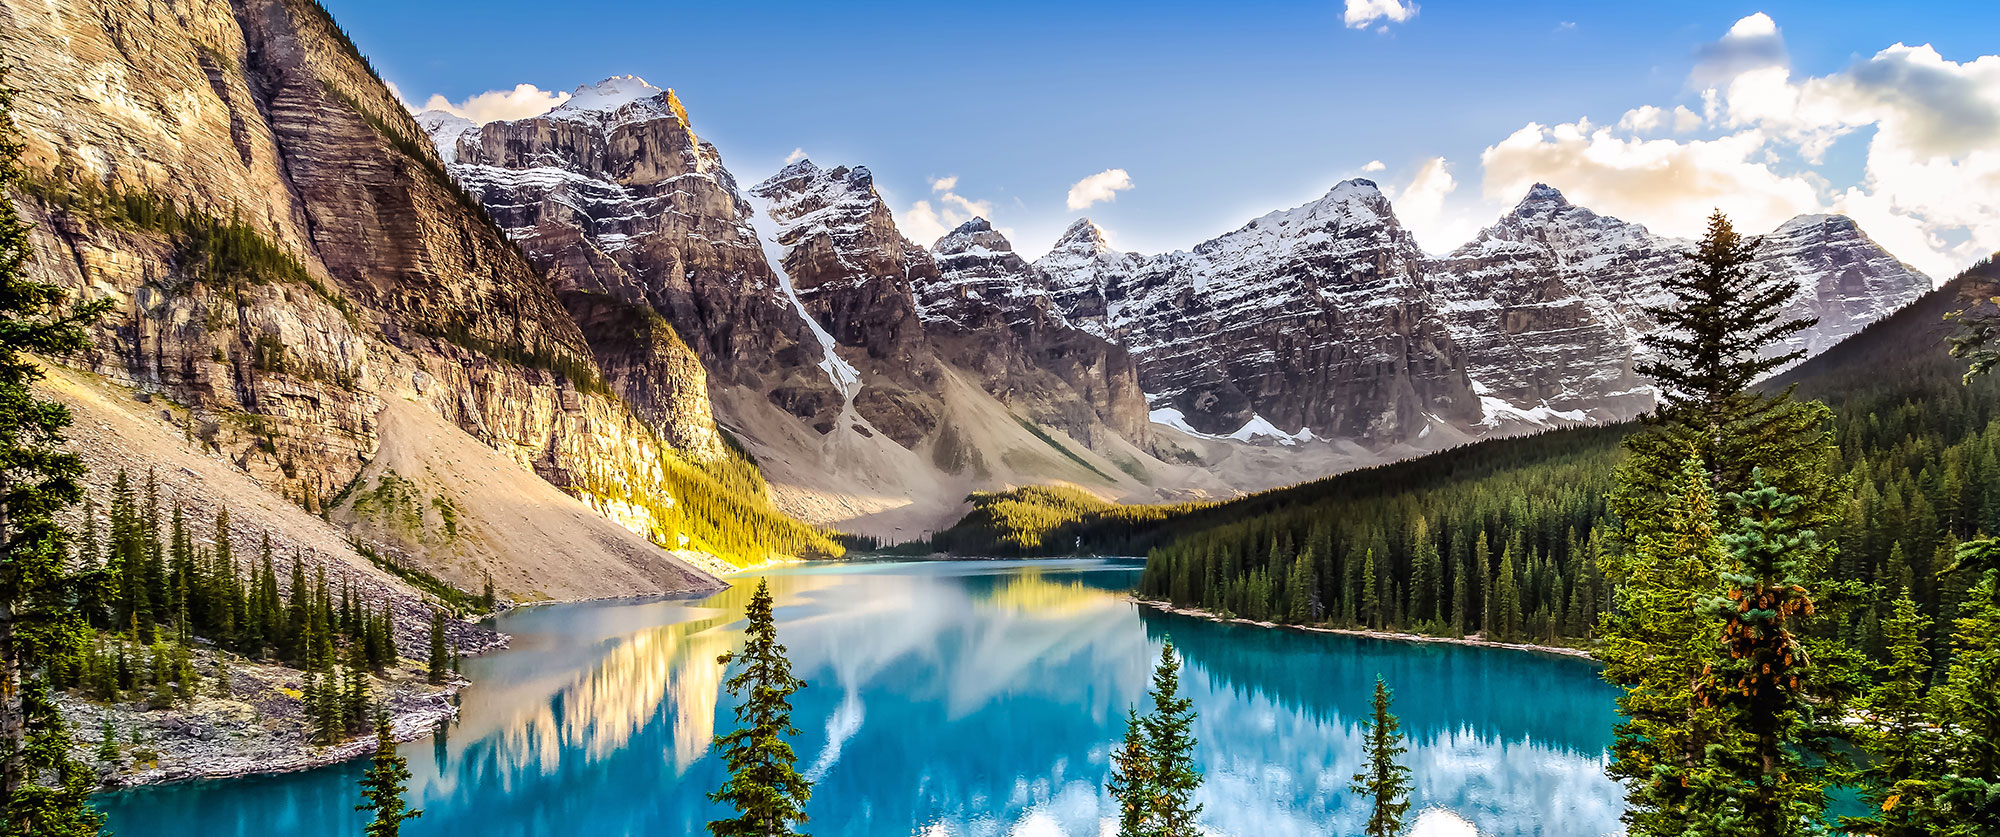 Morain Lake and mountain range in Canada